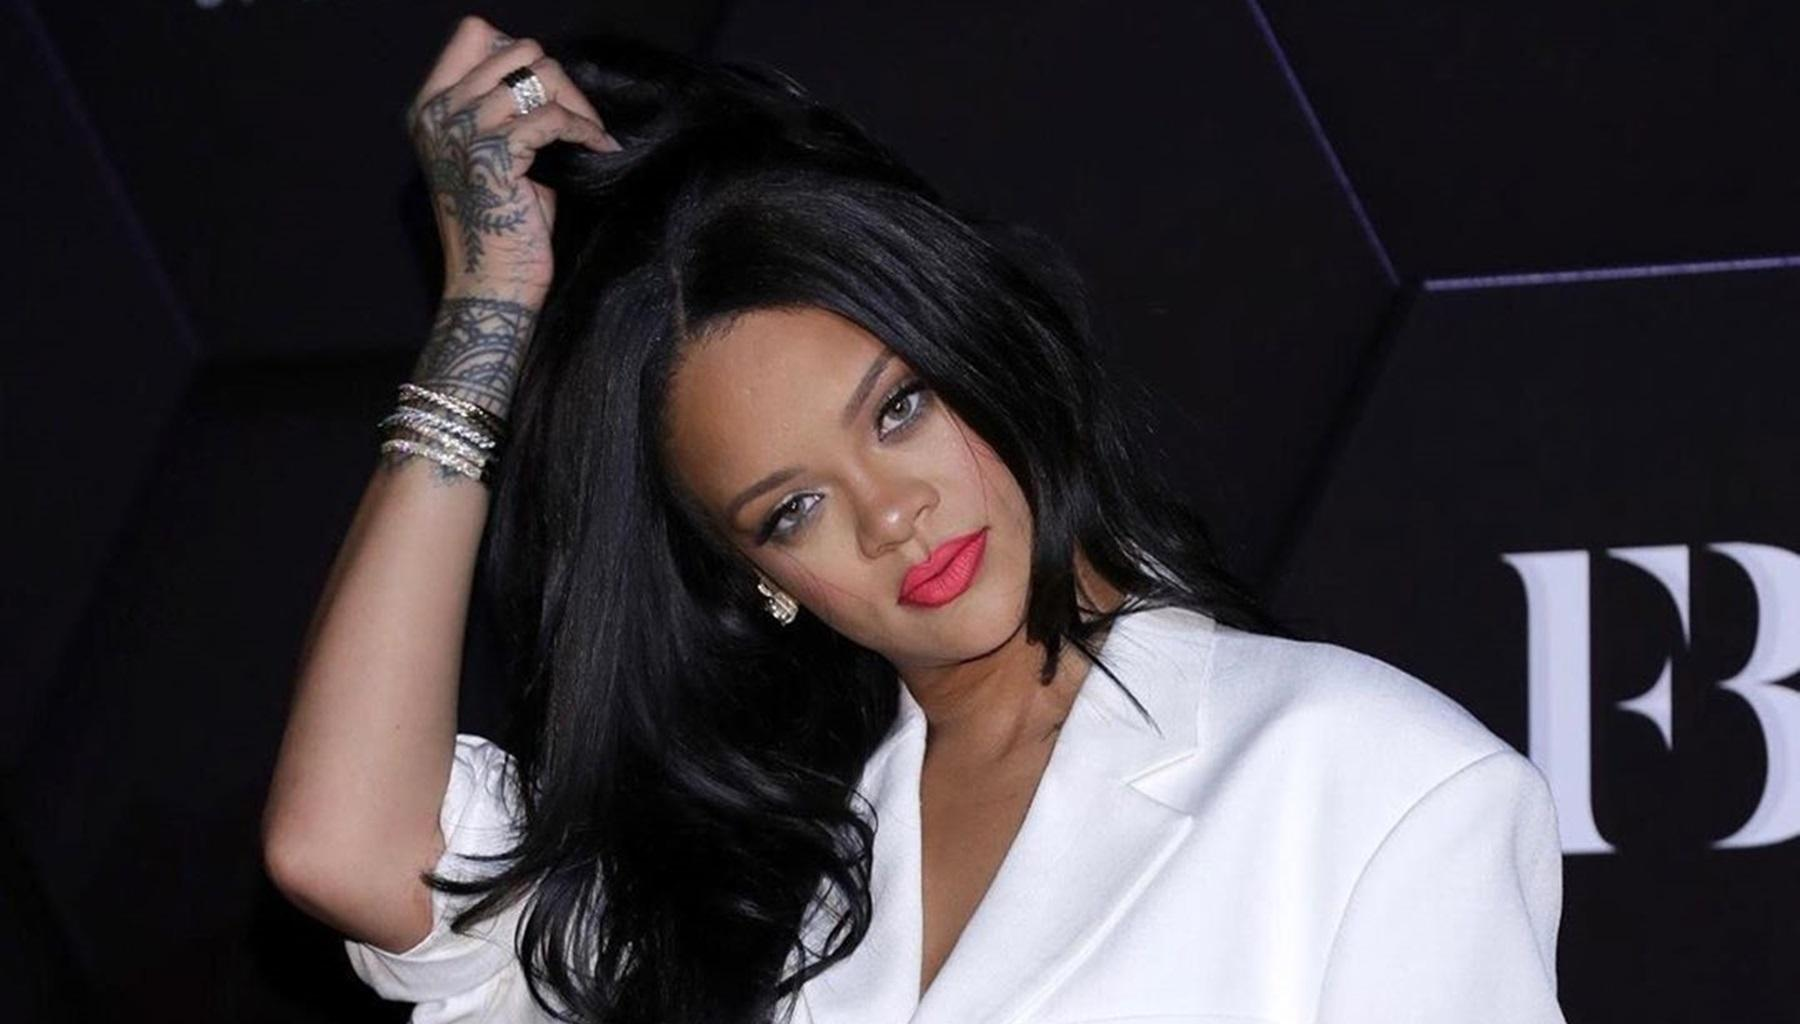 Rihanna Looks Like A Real Life Doll In Angelic White Outfit -- Pictures Of Hassan Jameel's GF Still Make Fans Think She Is Hiding Her Pregnancy